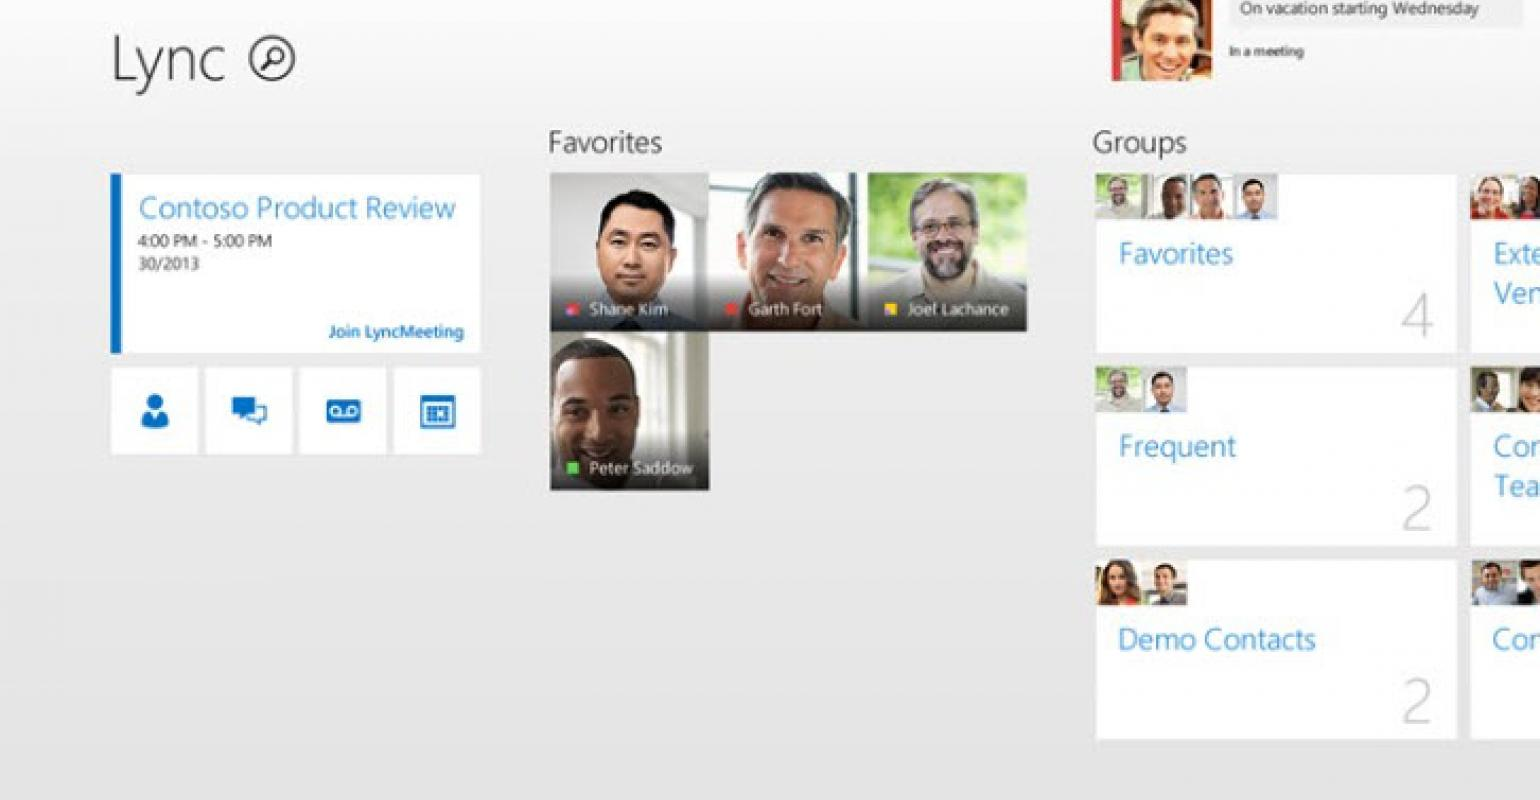 Microsoft Lync App Updated for Windows 8 1 | IT Pro